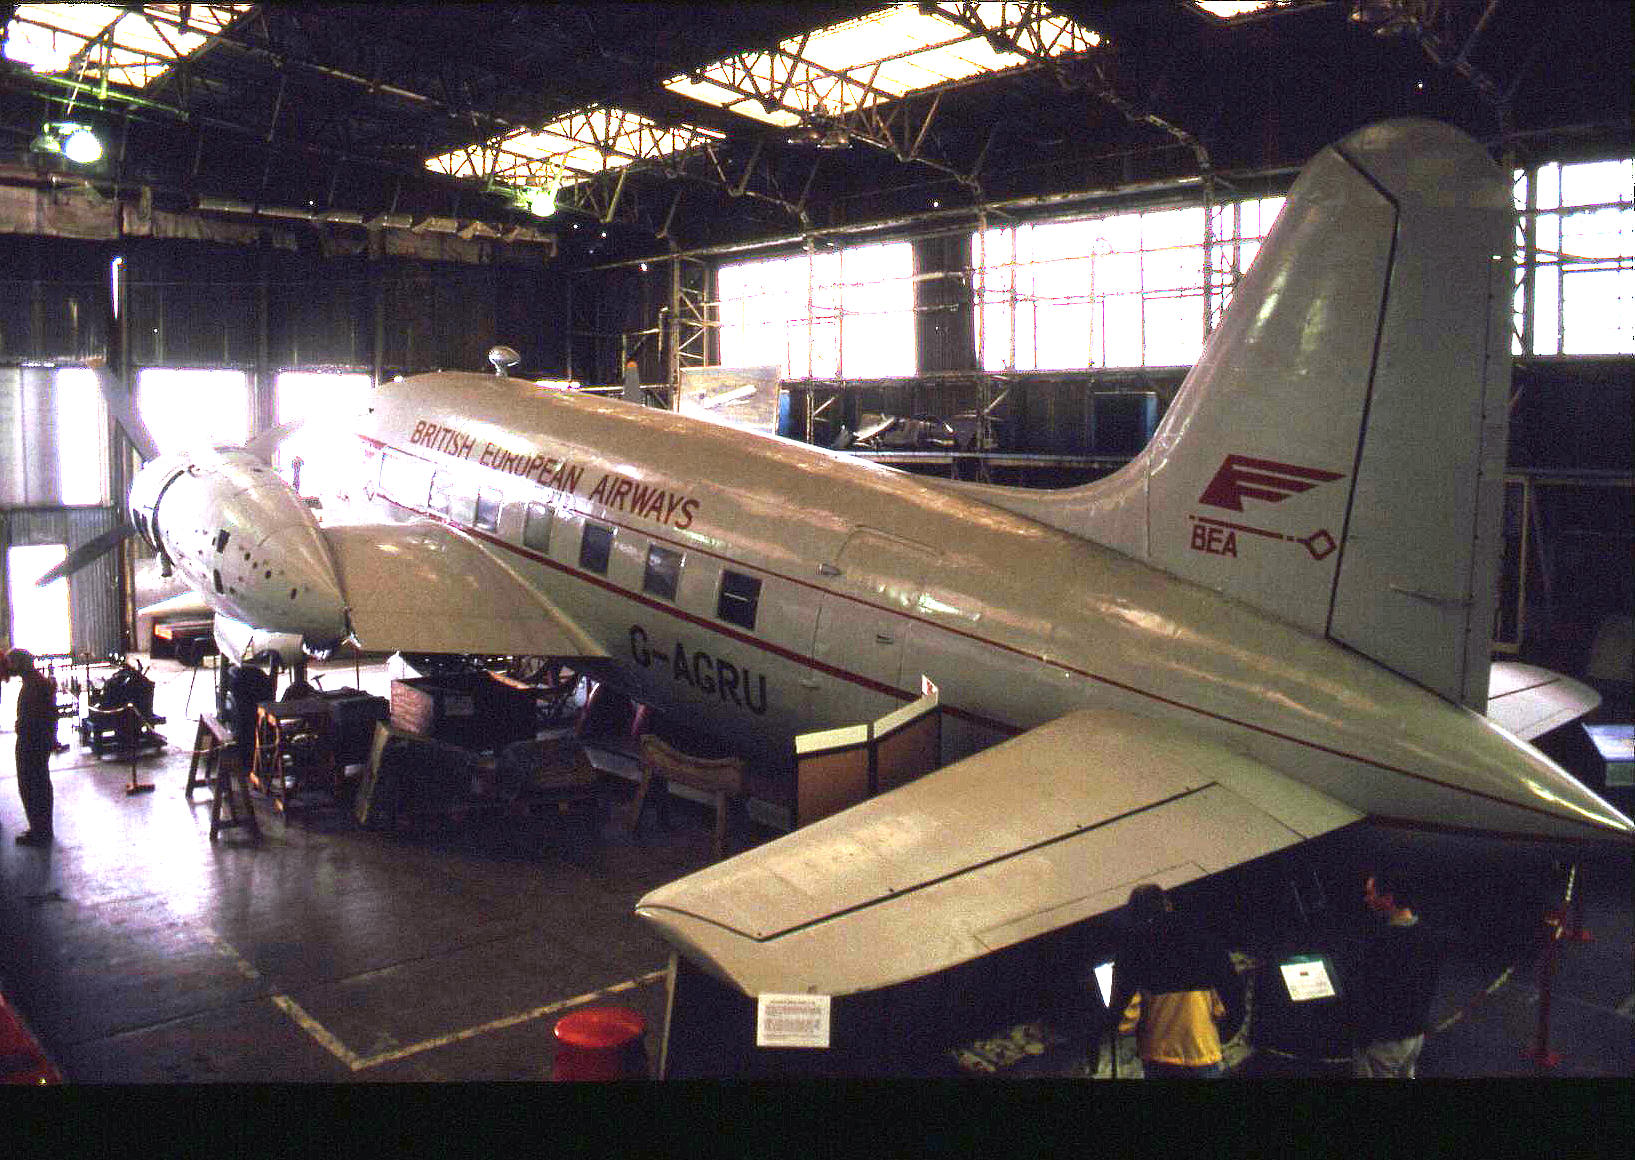 The BEA Vickers Viking G-AGRU under restoration in 1993